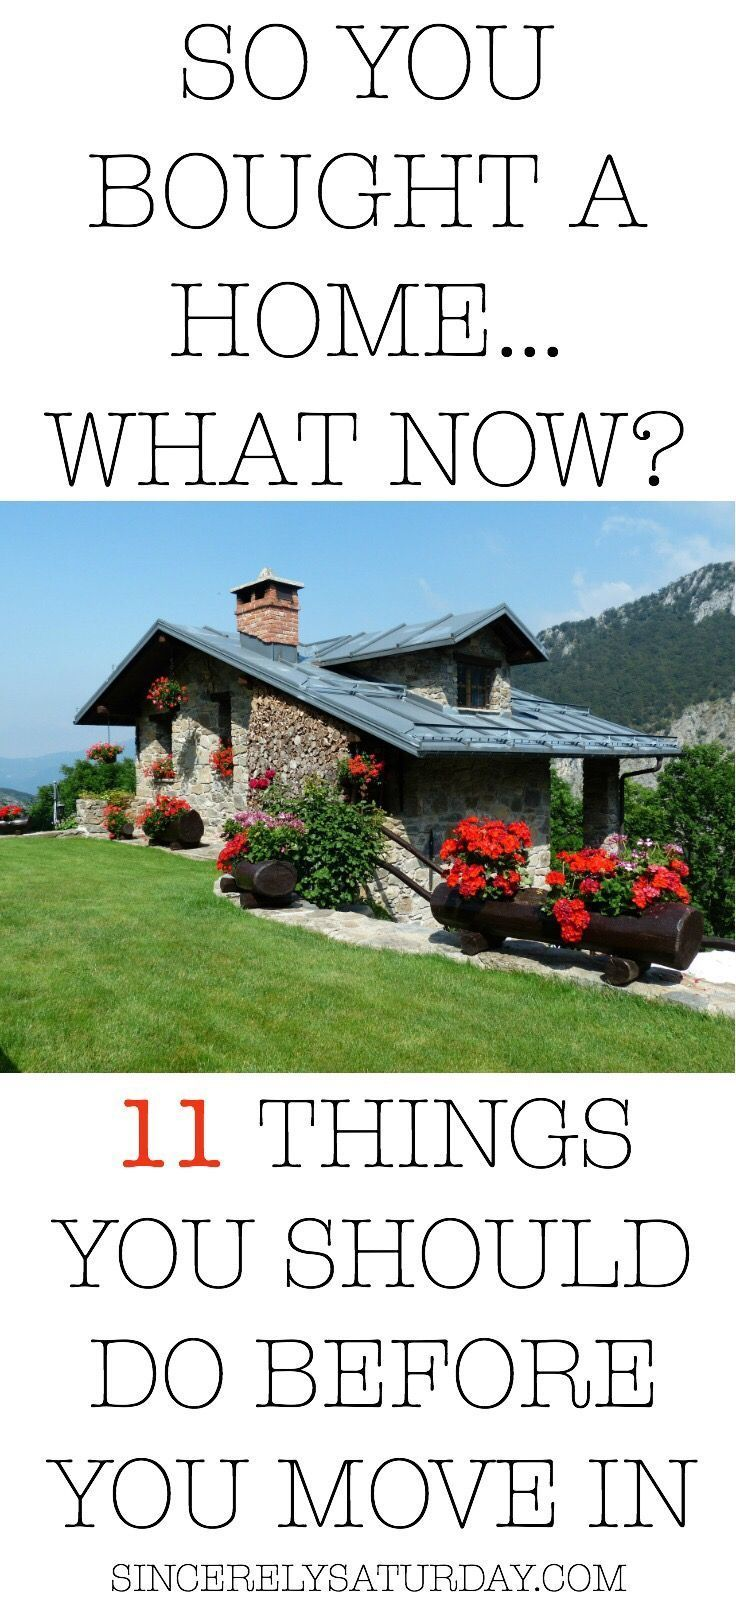 so you bought a homewhat now? - 11 things you should do